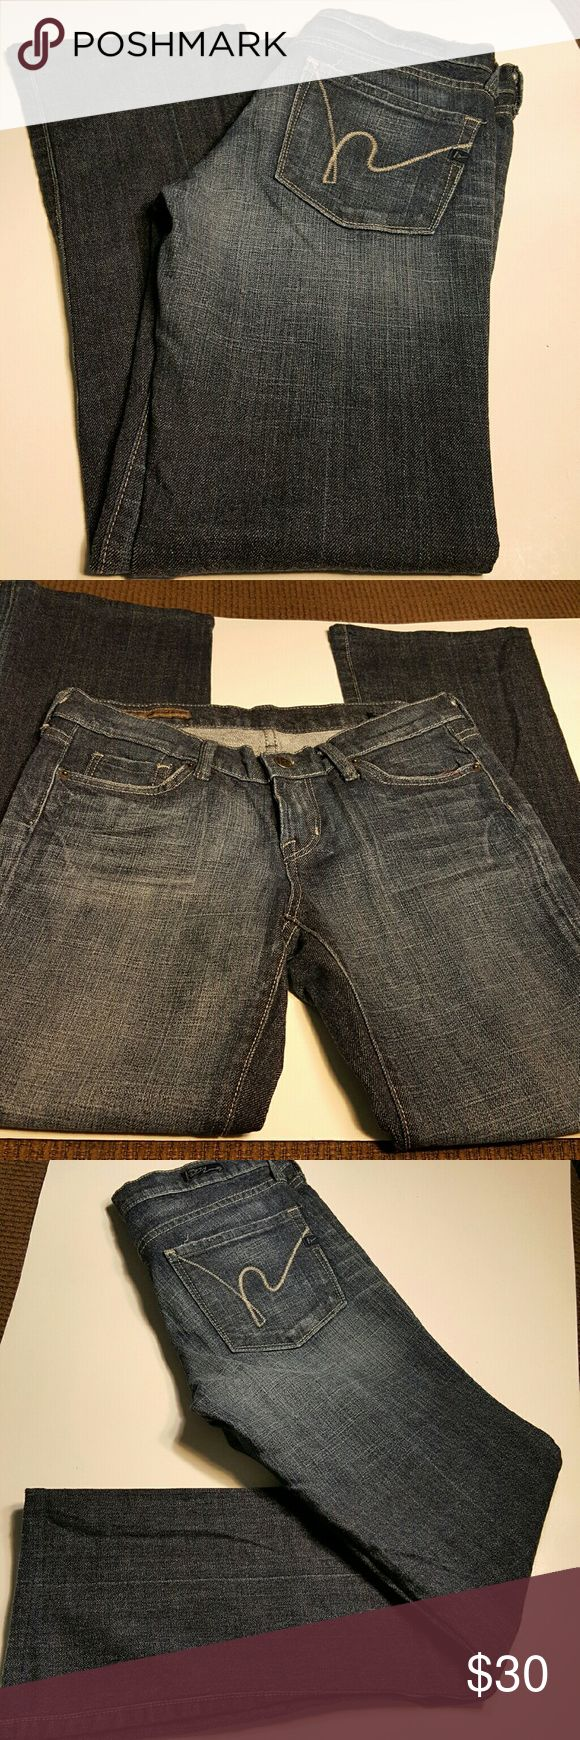 """Citizens for Humanity Jeans Kelly Boot cut, low waist. 28"""" inseam.  Gently worn and well taken care of.  See photos for more information. Citizens of Humanity Jeans"""